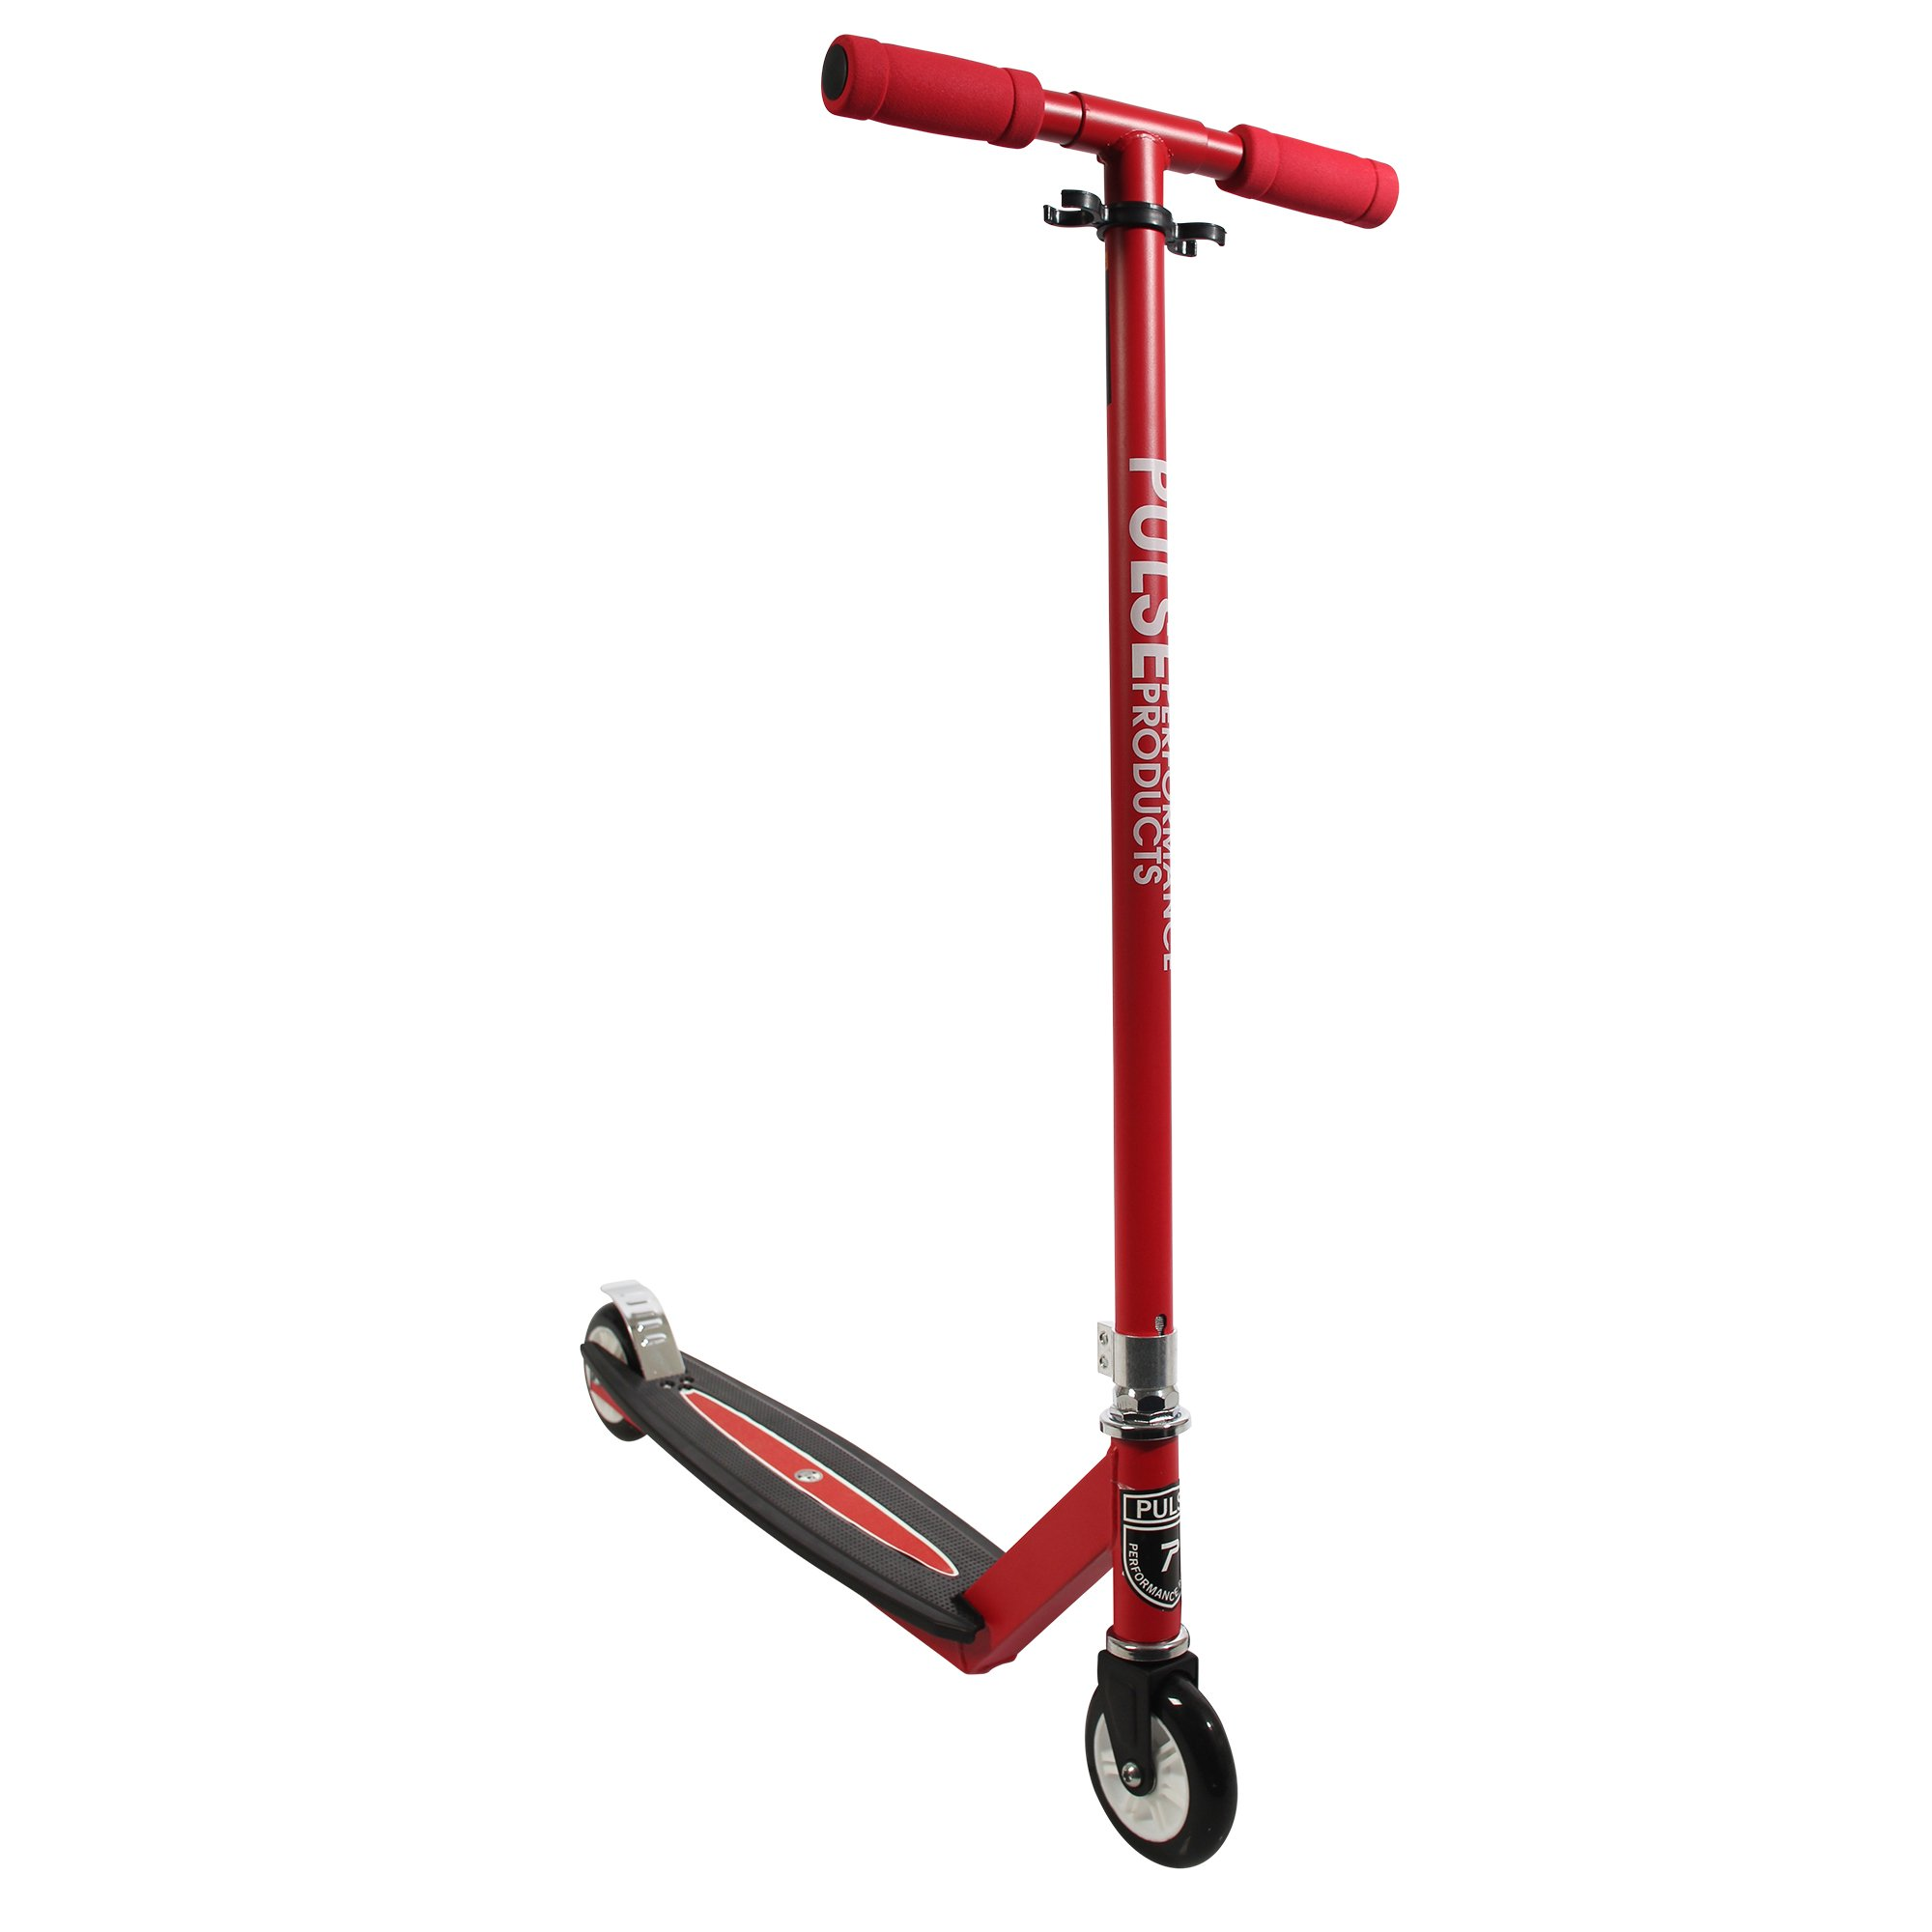 Pulse Performance Products S-100 Freestyle Scooter - Beginner Kick Pro Scooter for Kids - Red by Pulse Performance Products